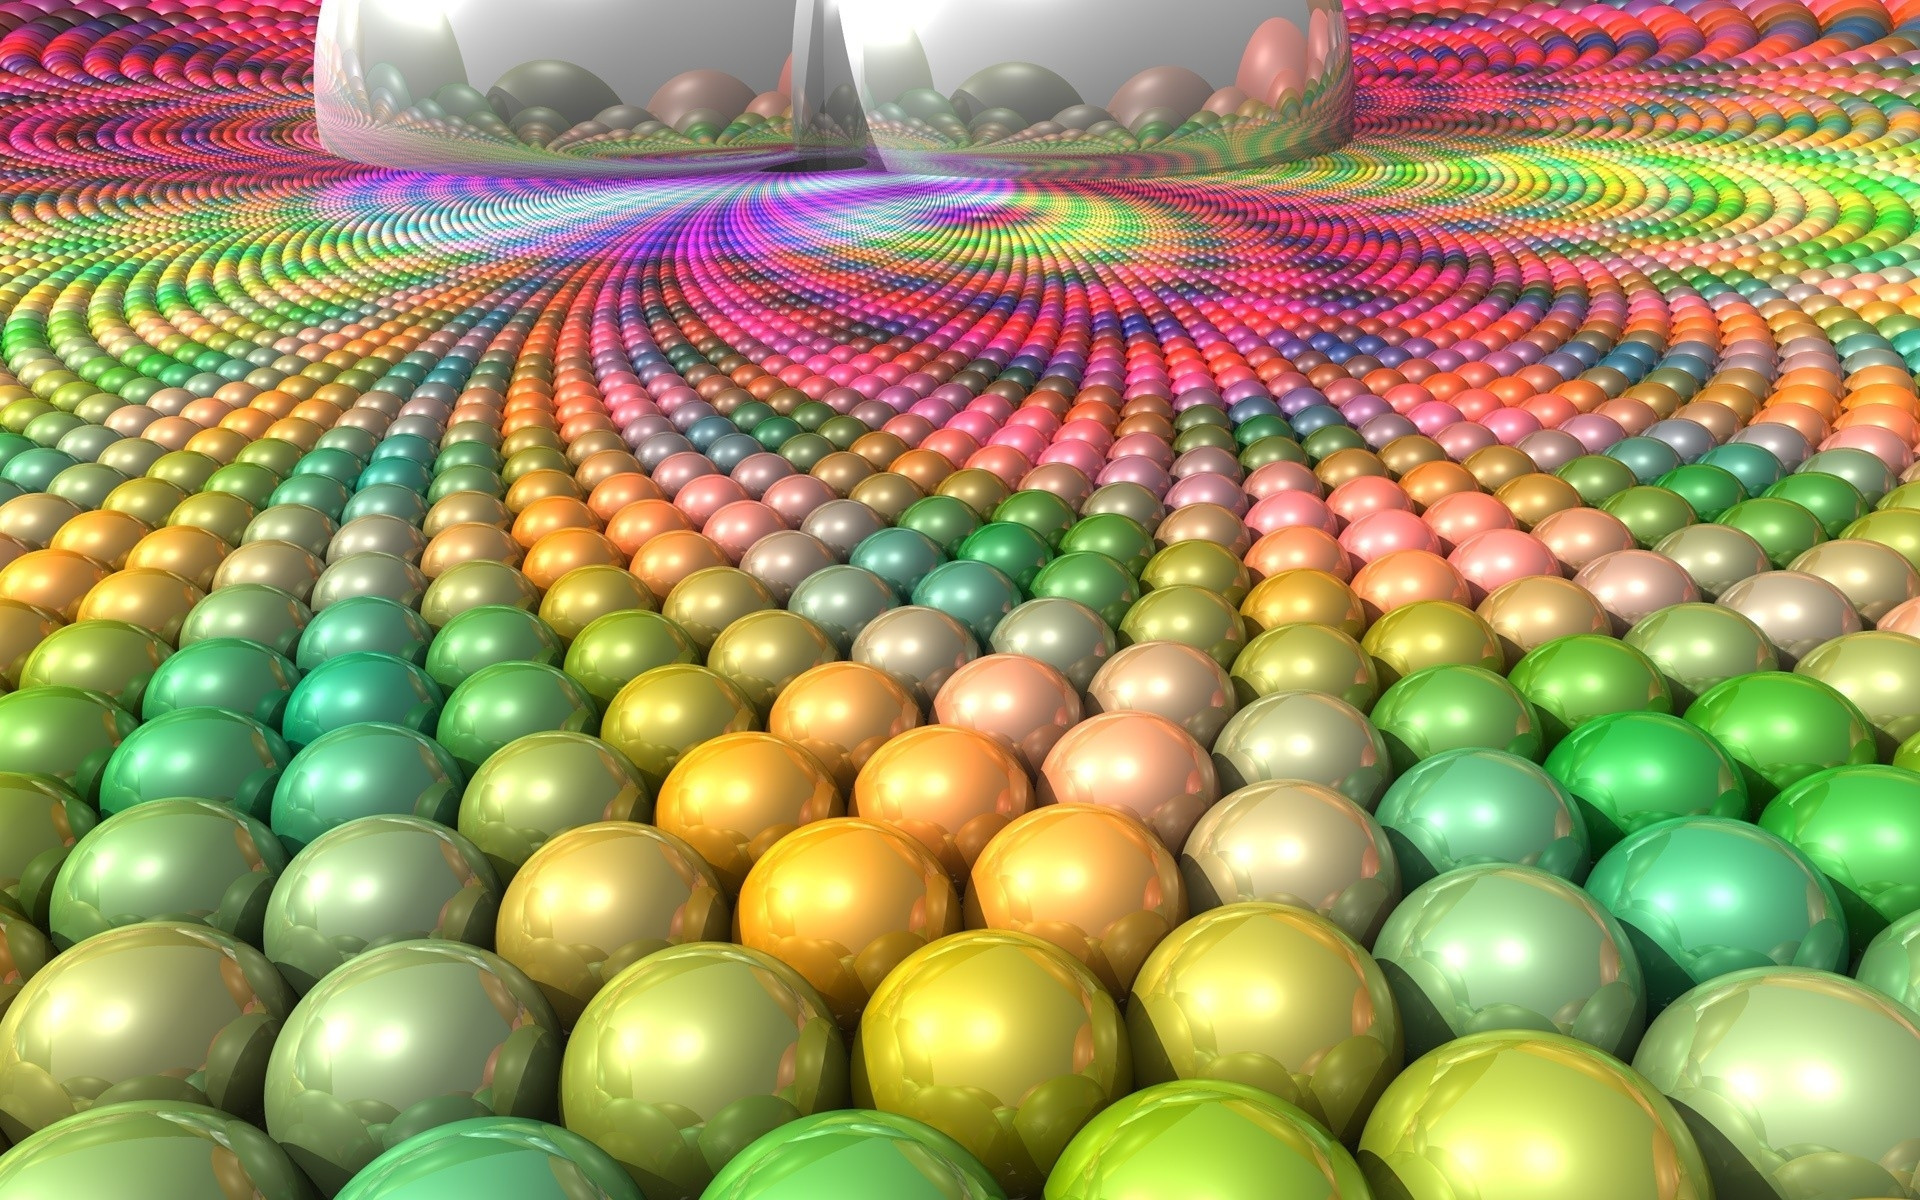 Res: 1920x1200, BALL SURFACE MULTI COLORED BRIGHT 3D Colorful Wallpaper.